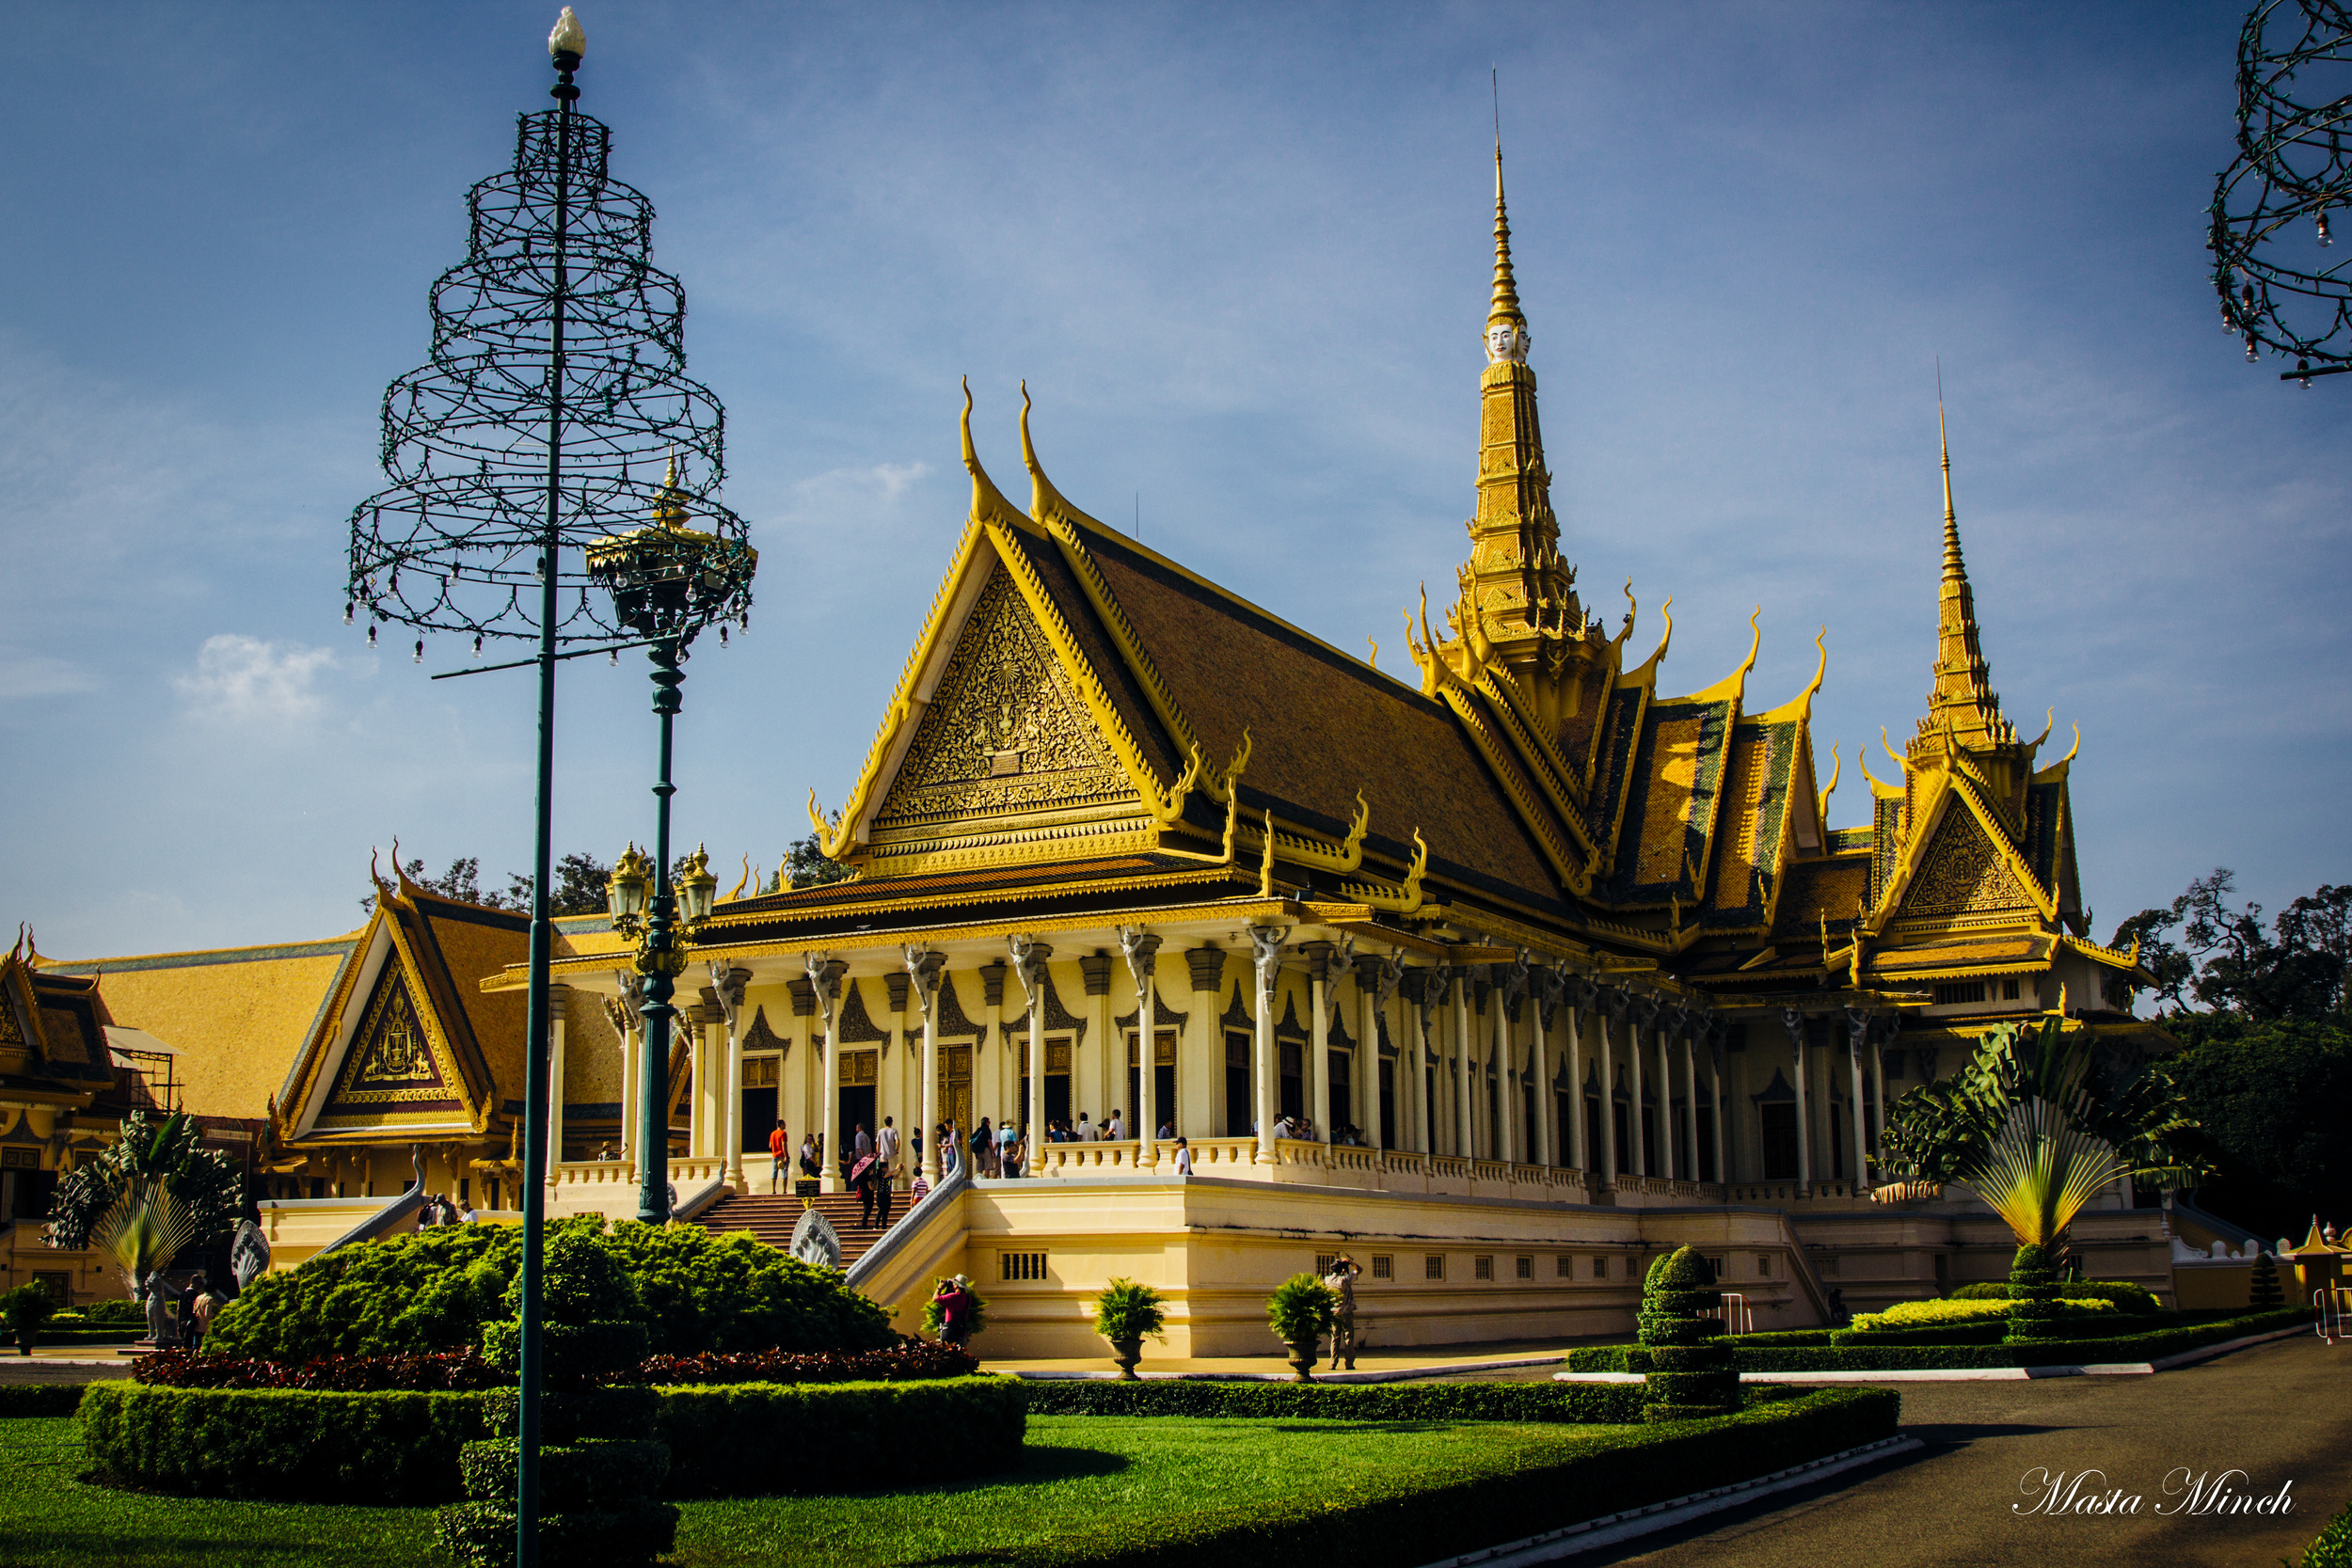 The royal palace of Phnom Pehn. Gold...gold everywhere.